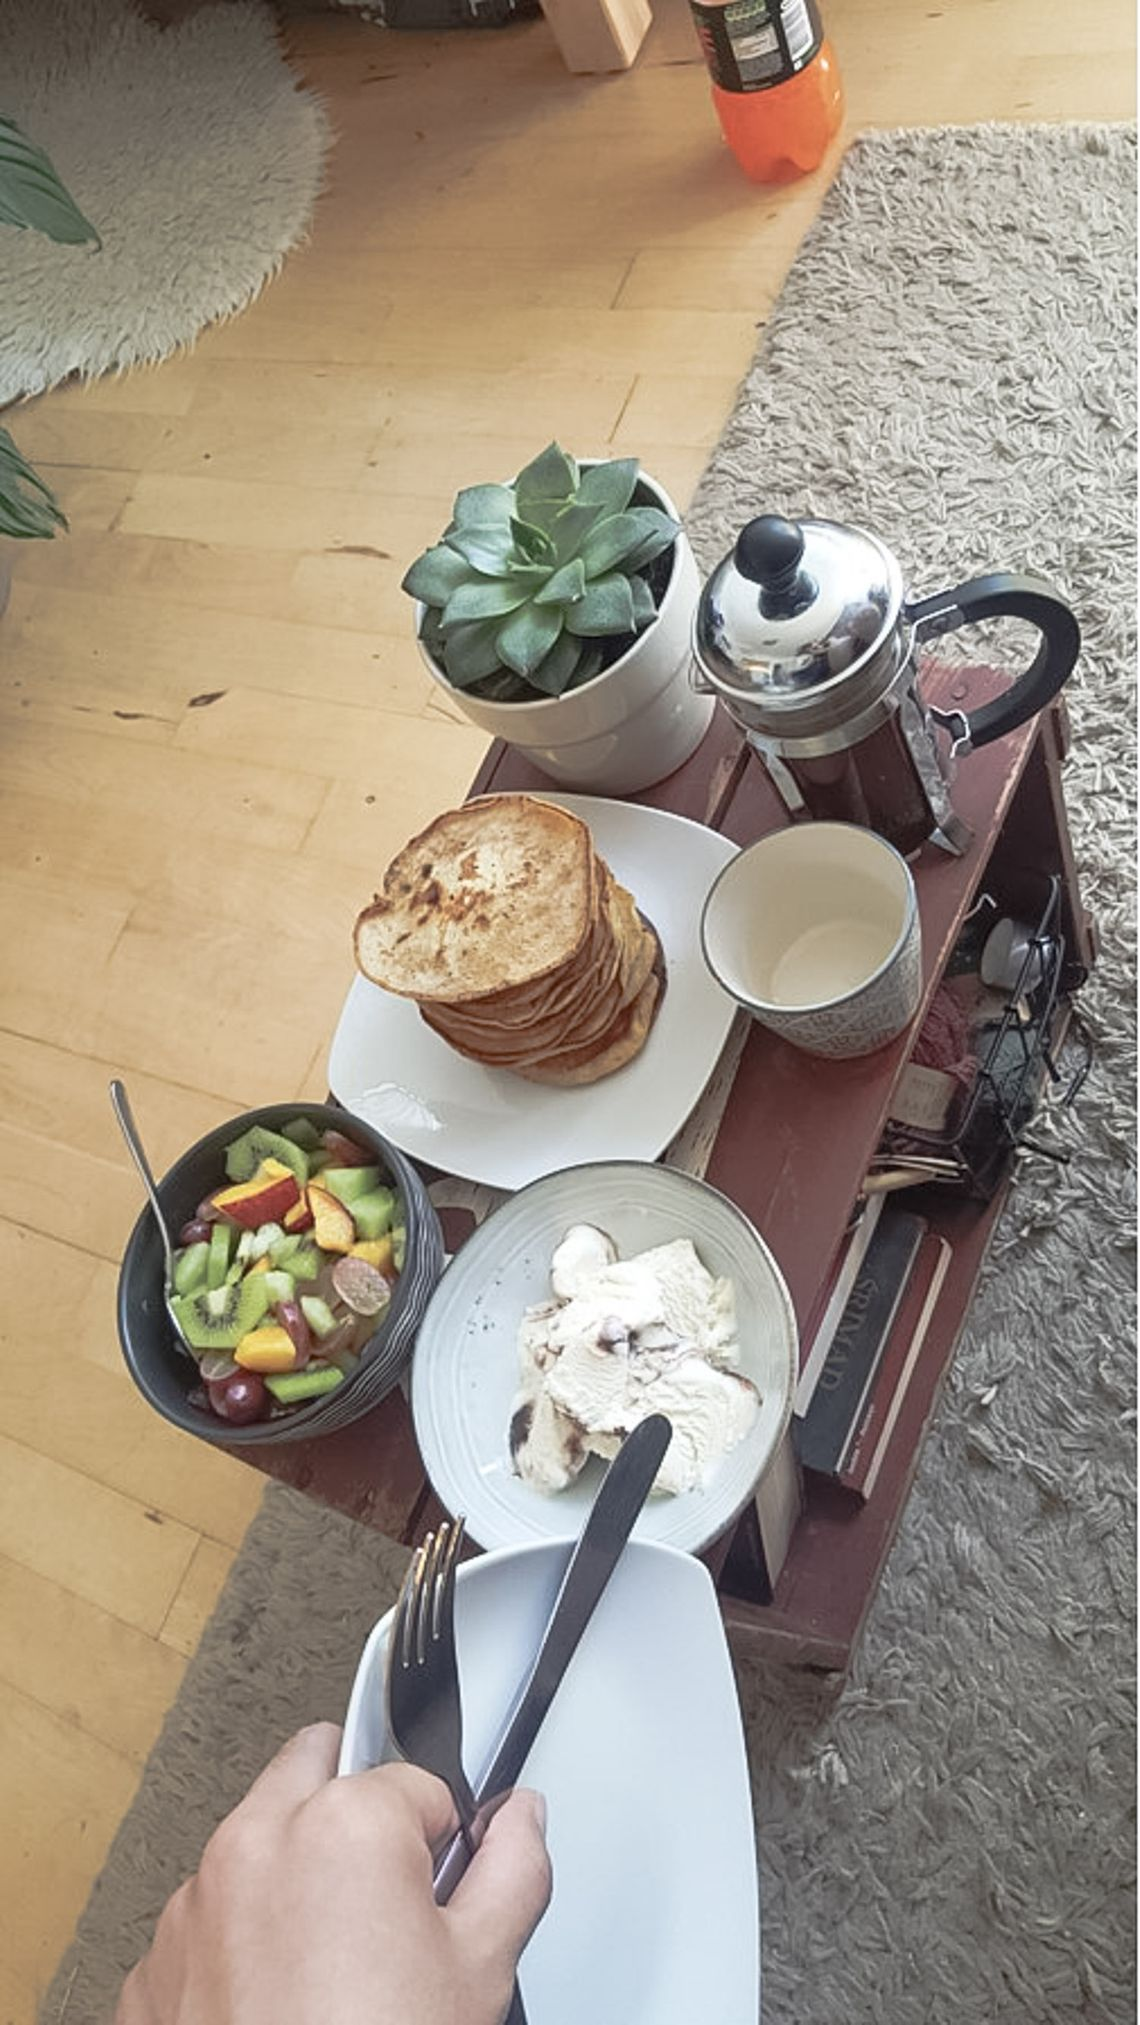 A table with a plant, coffee, pancakes, a bowl of fruit and icecream.